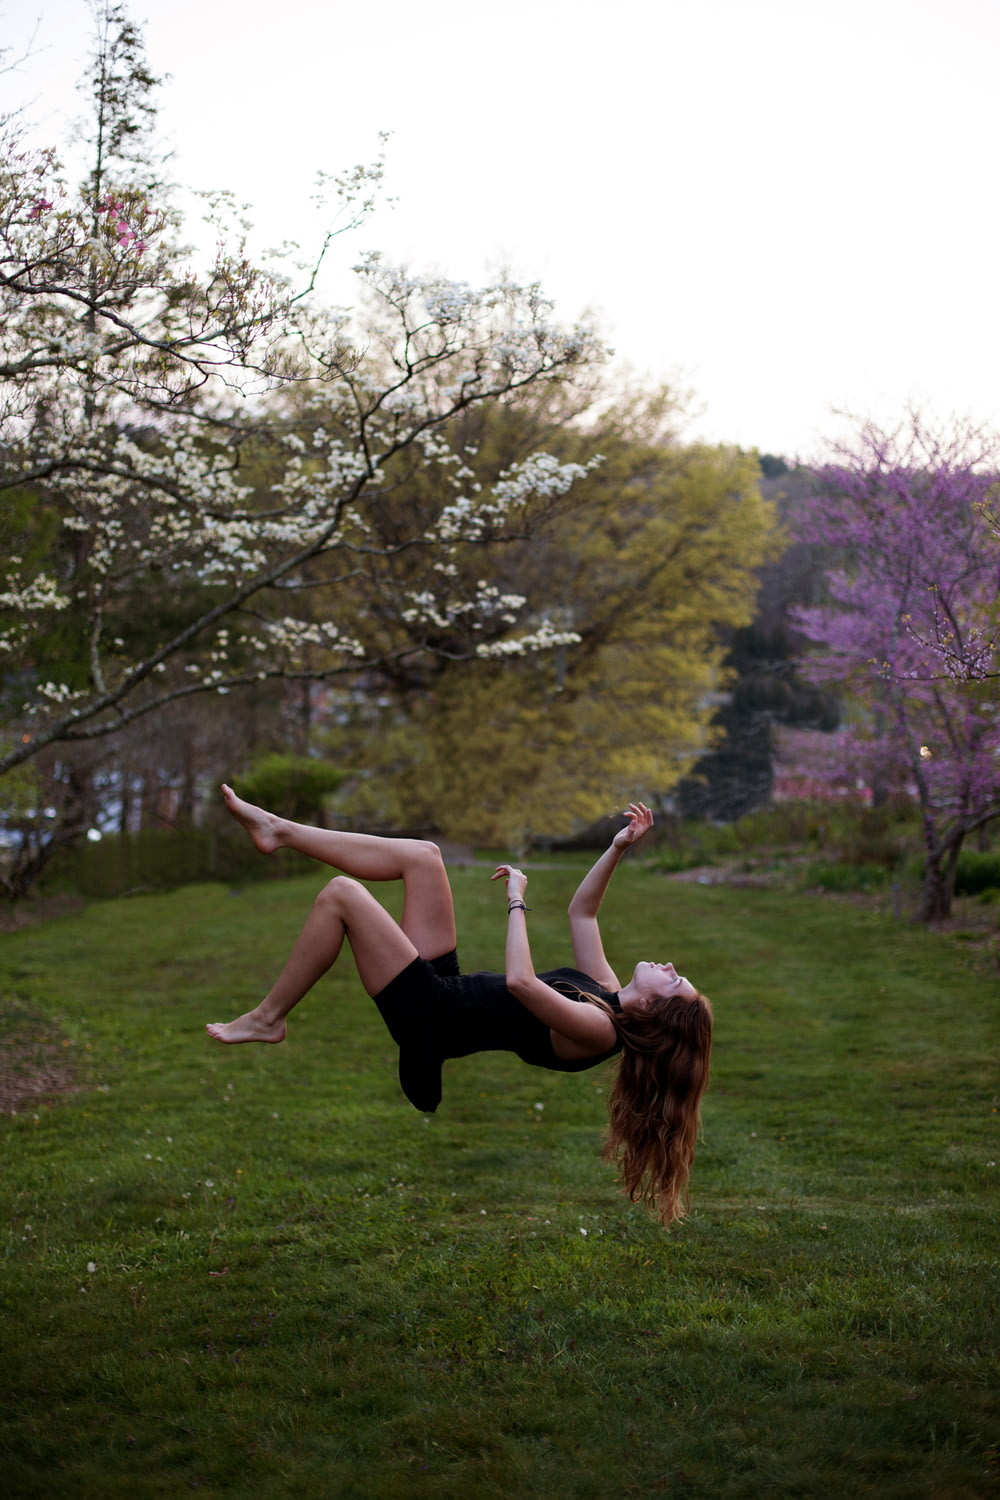 woman back flipping in the garden